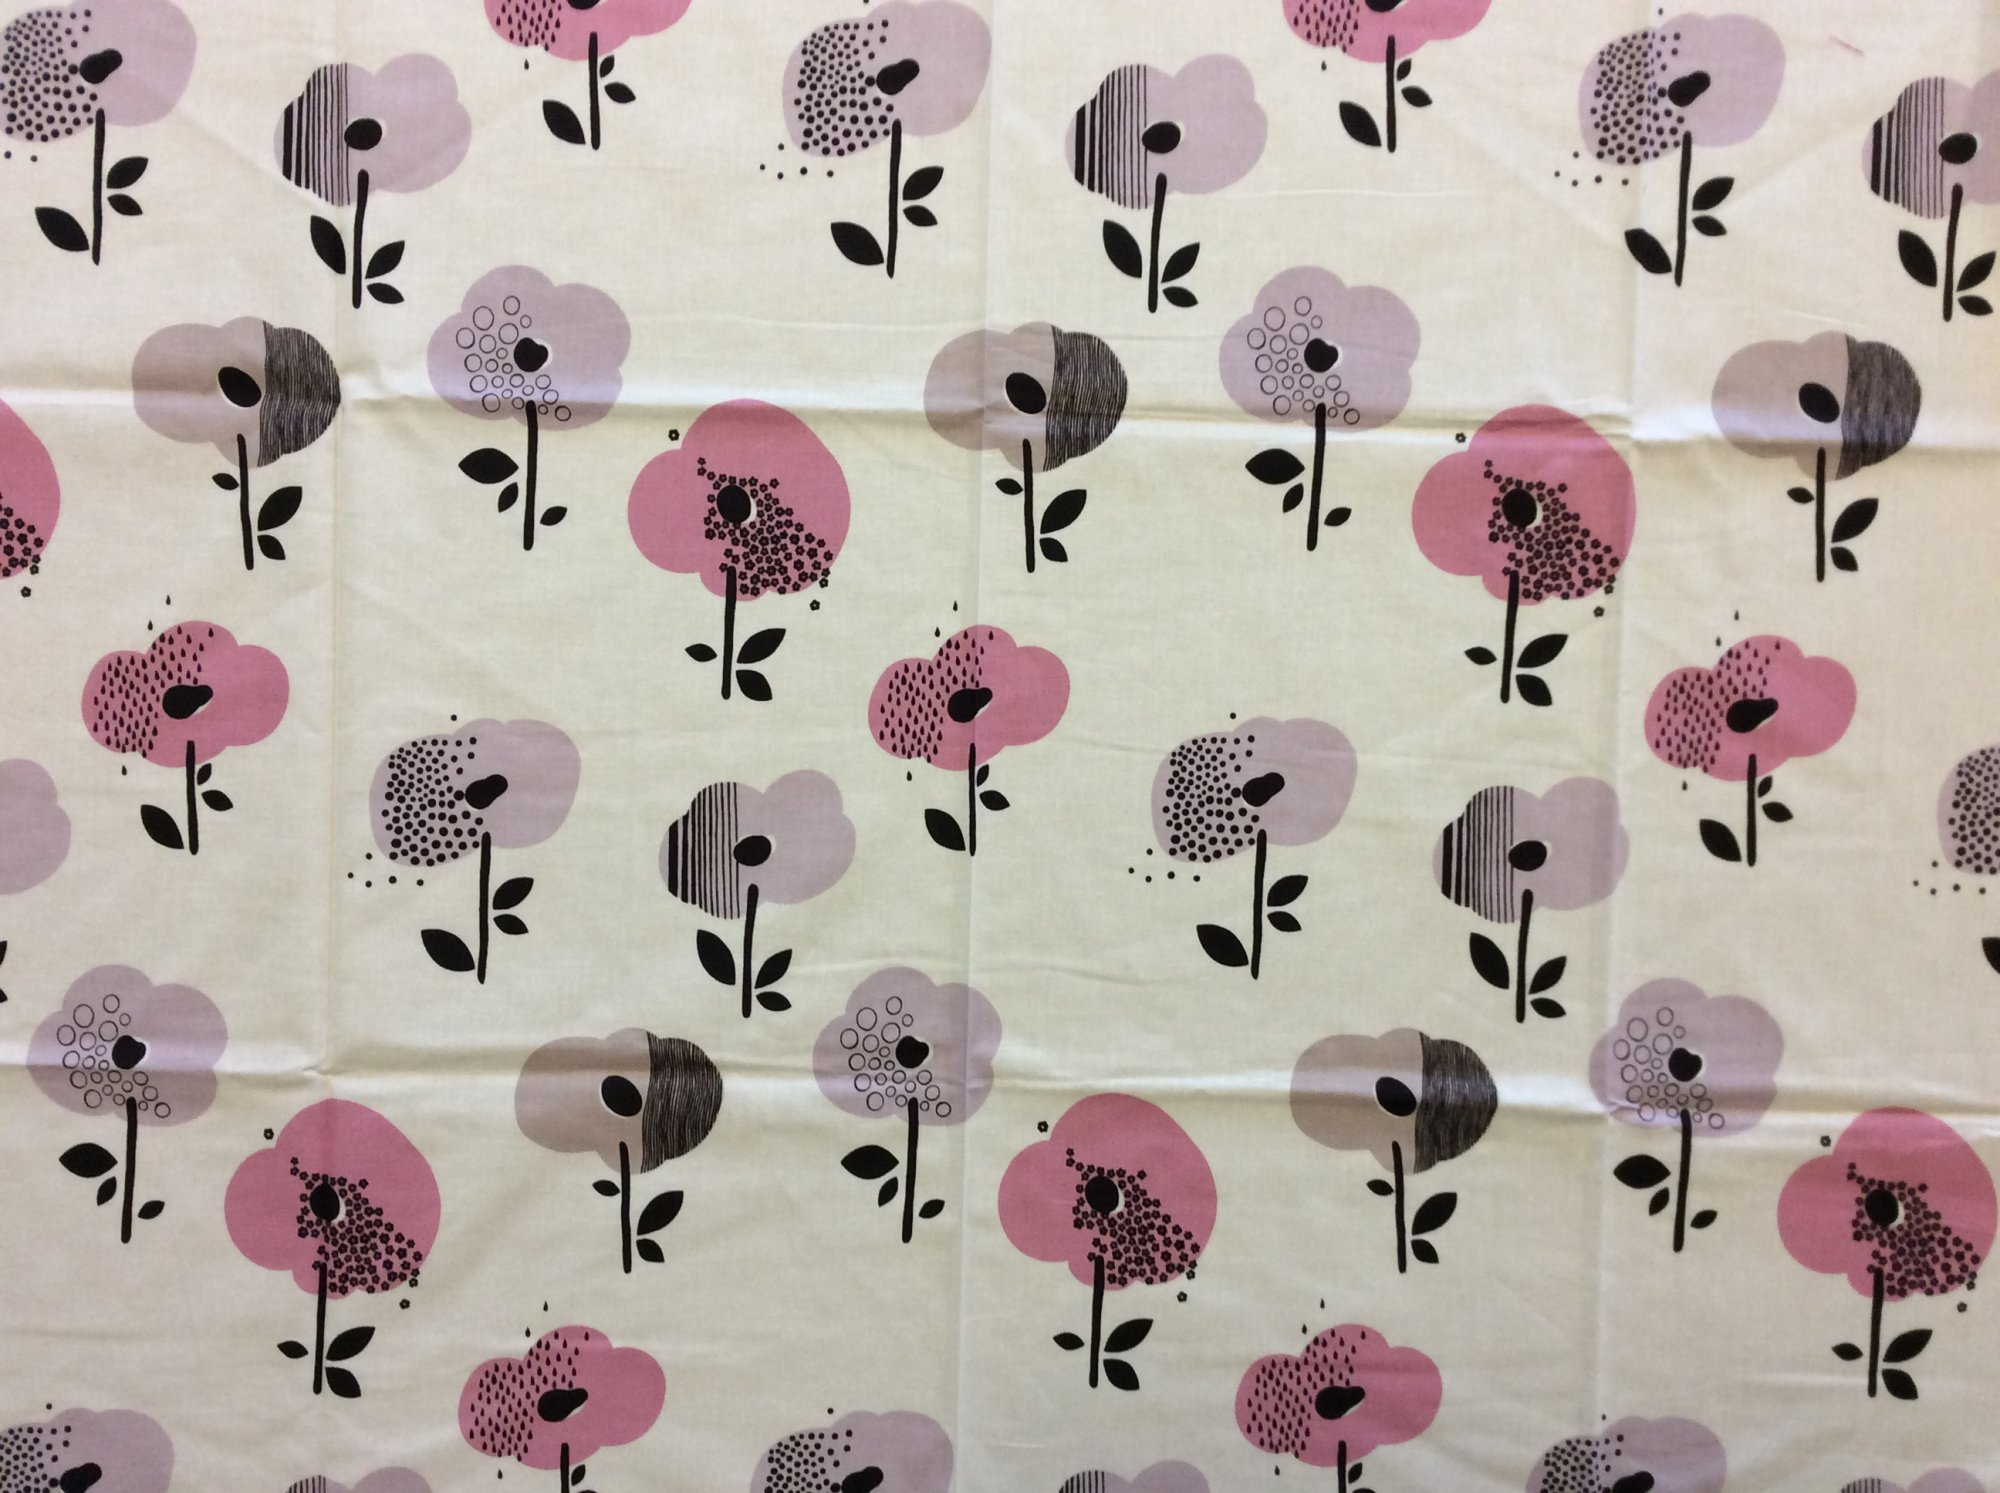 Rare! Out of Print Alexander Henry! Sold by the Piece broome street floral Purple Pink Modern Floral Cotton Quilt Fabric RPAH01